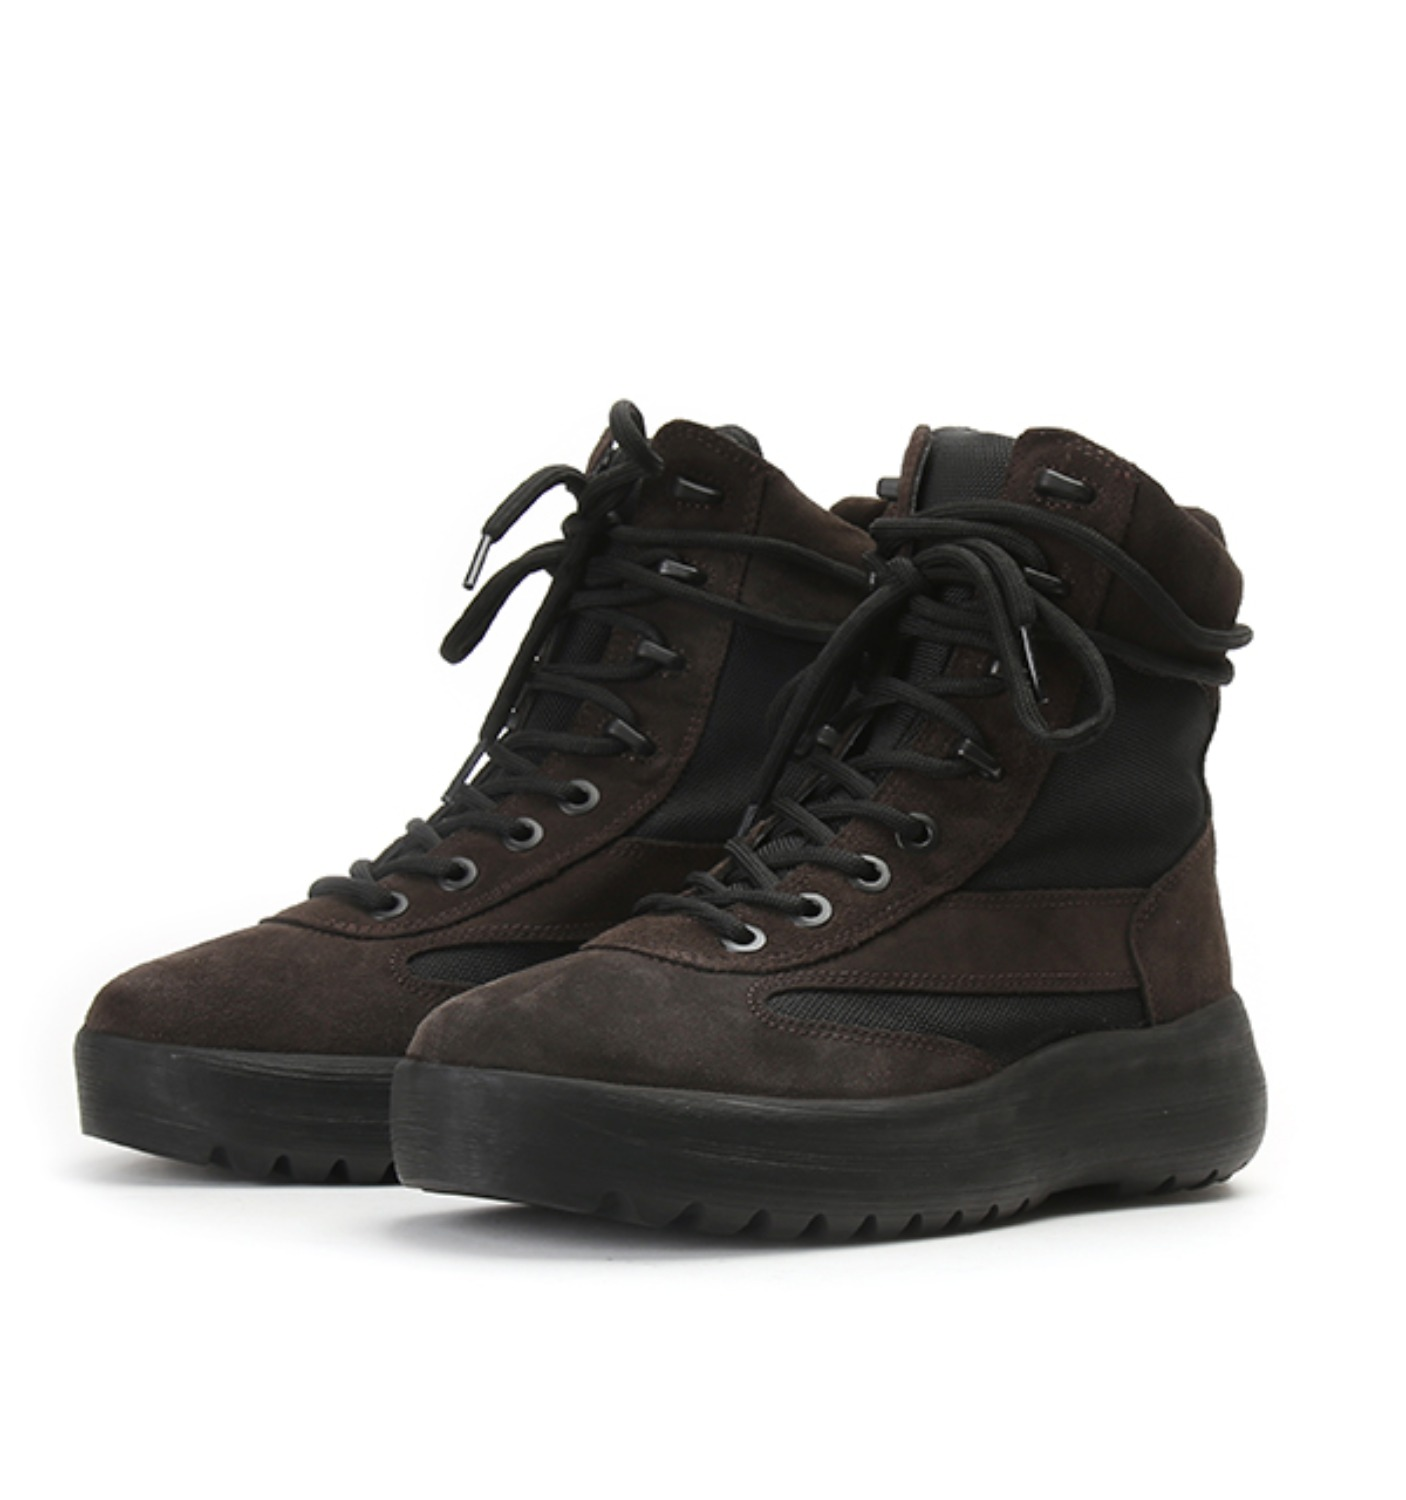 MILITARY BOOT THICK SUEDE&NYLON OIL(KM4005.133)